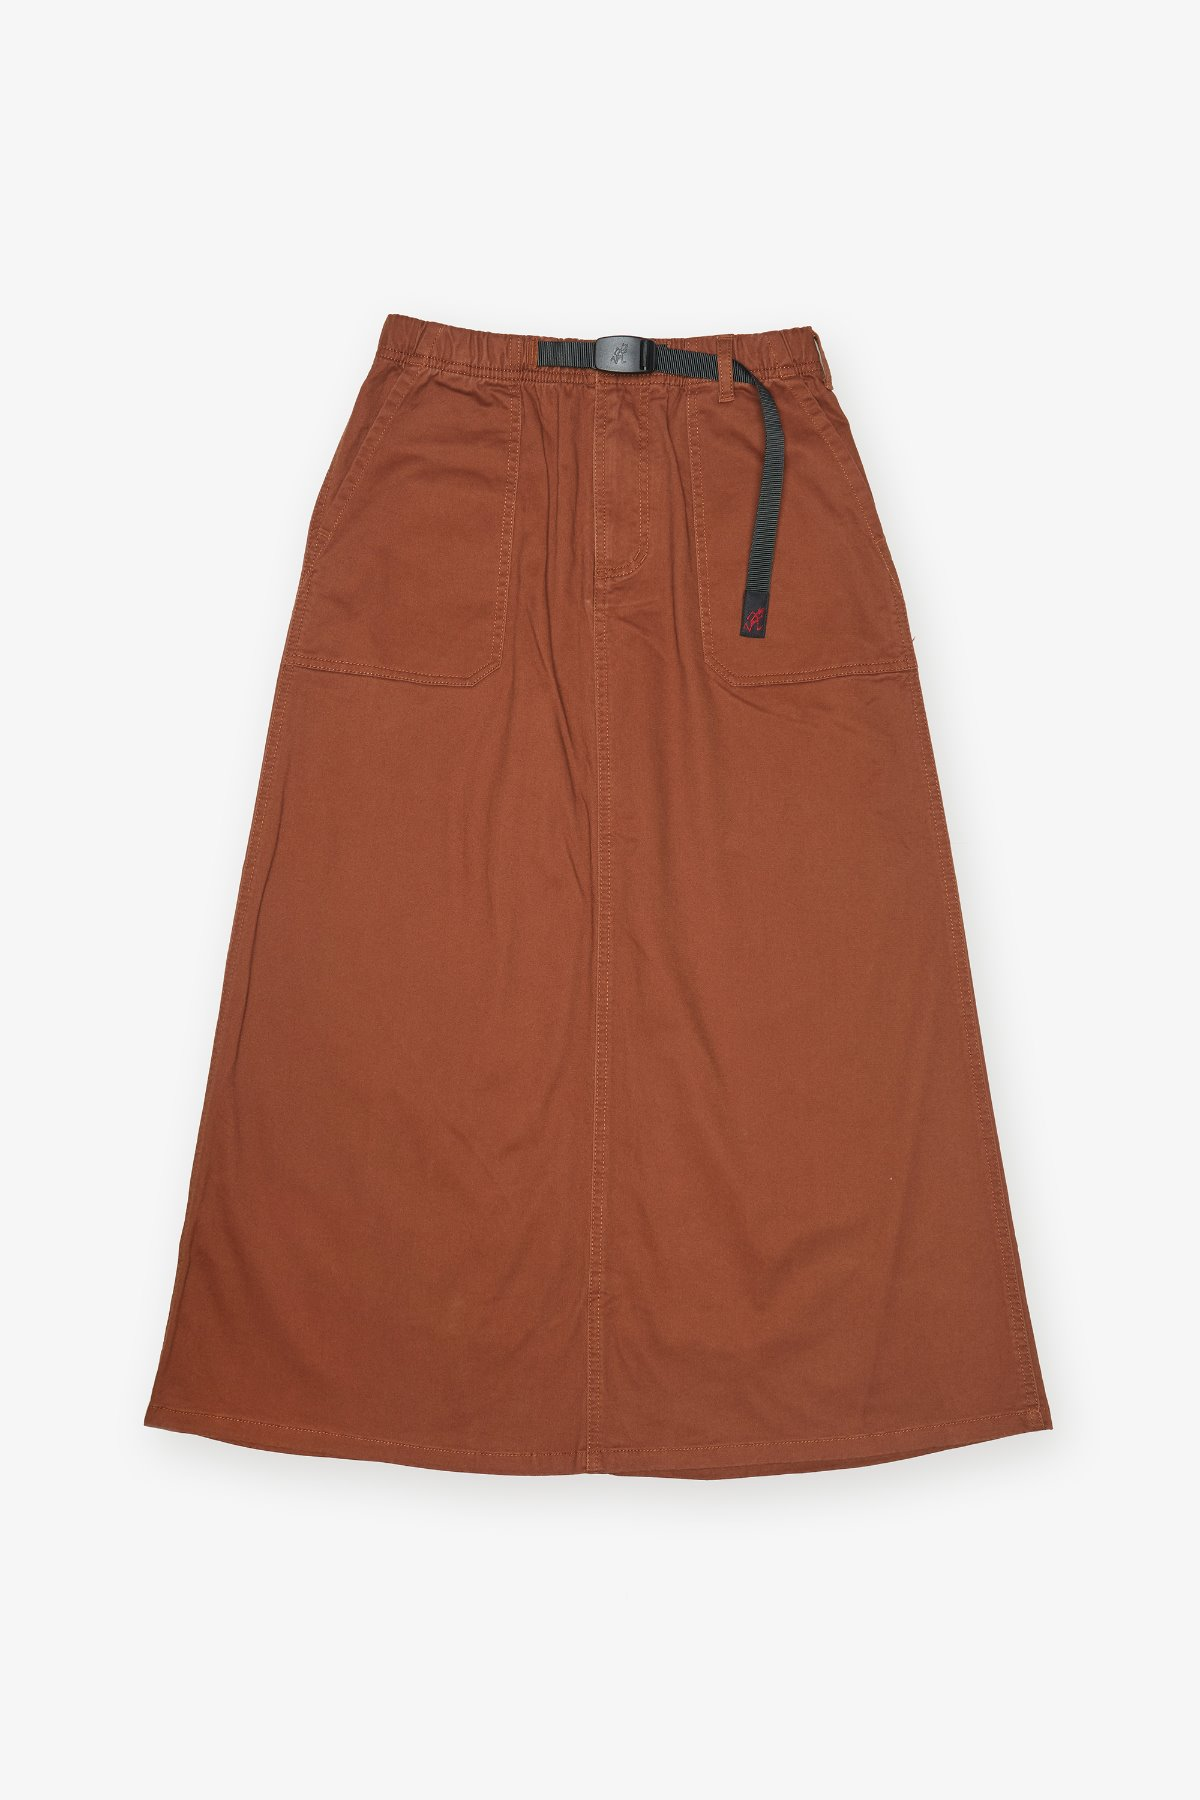 BAKER SKIRT BROWN